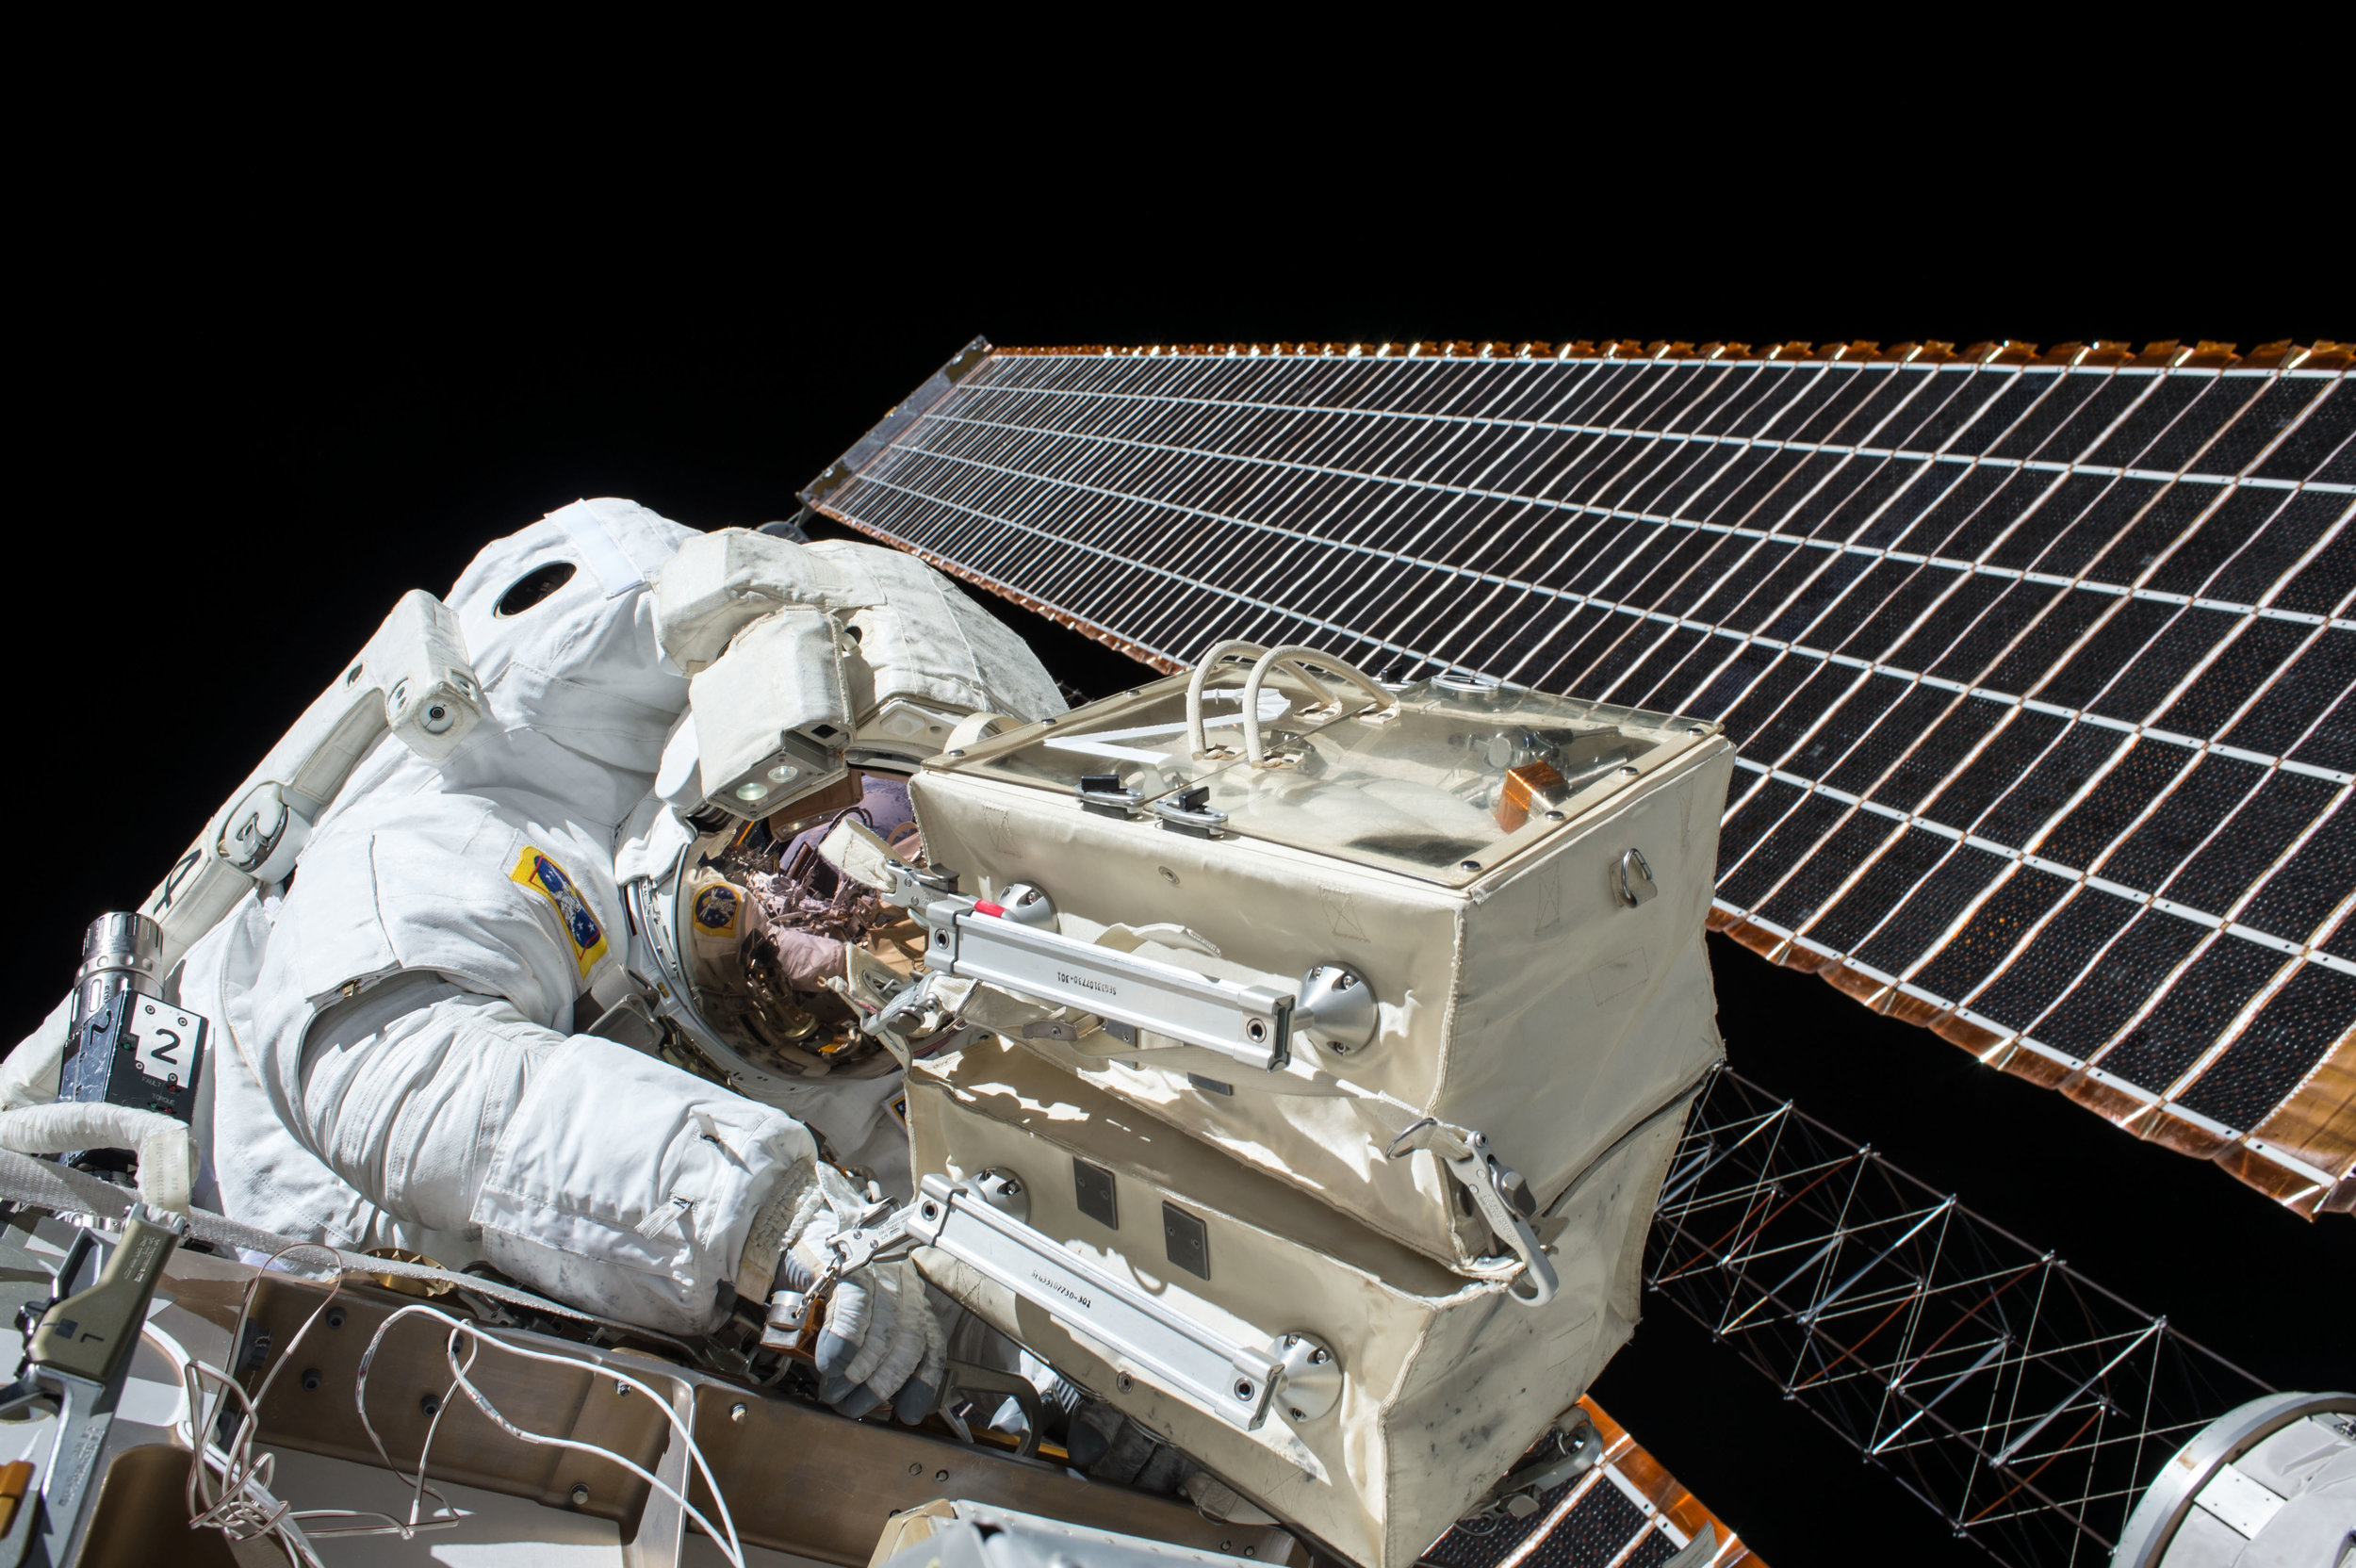 Our brave astronauts are being increasingly endangered by the man-made objects flying through space, known colloquially as space junk. Photo credit: NASA